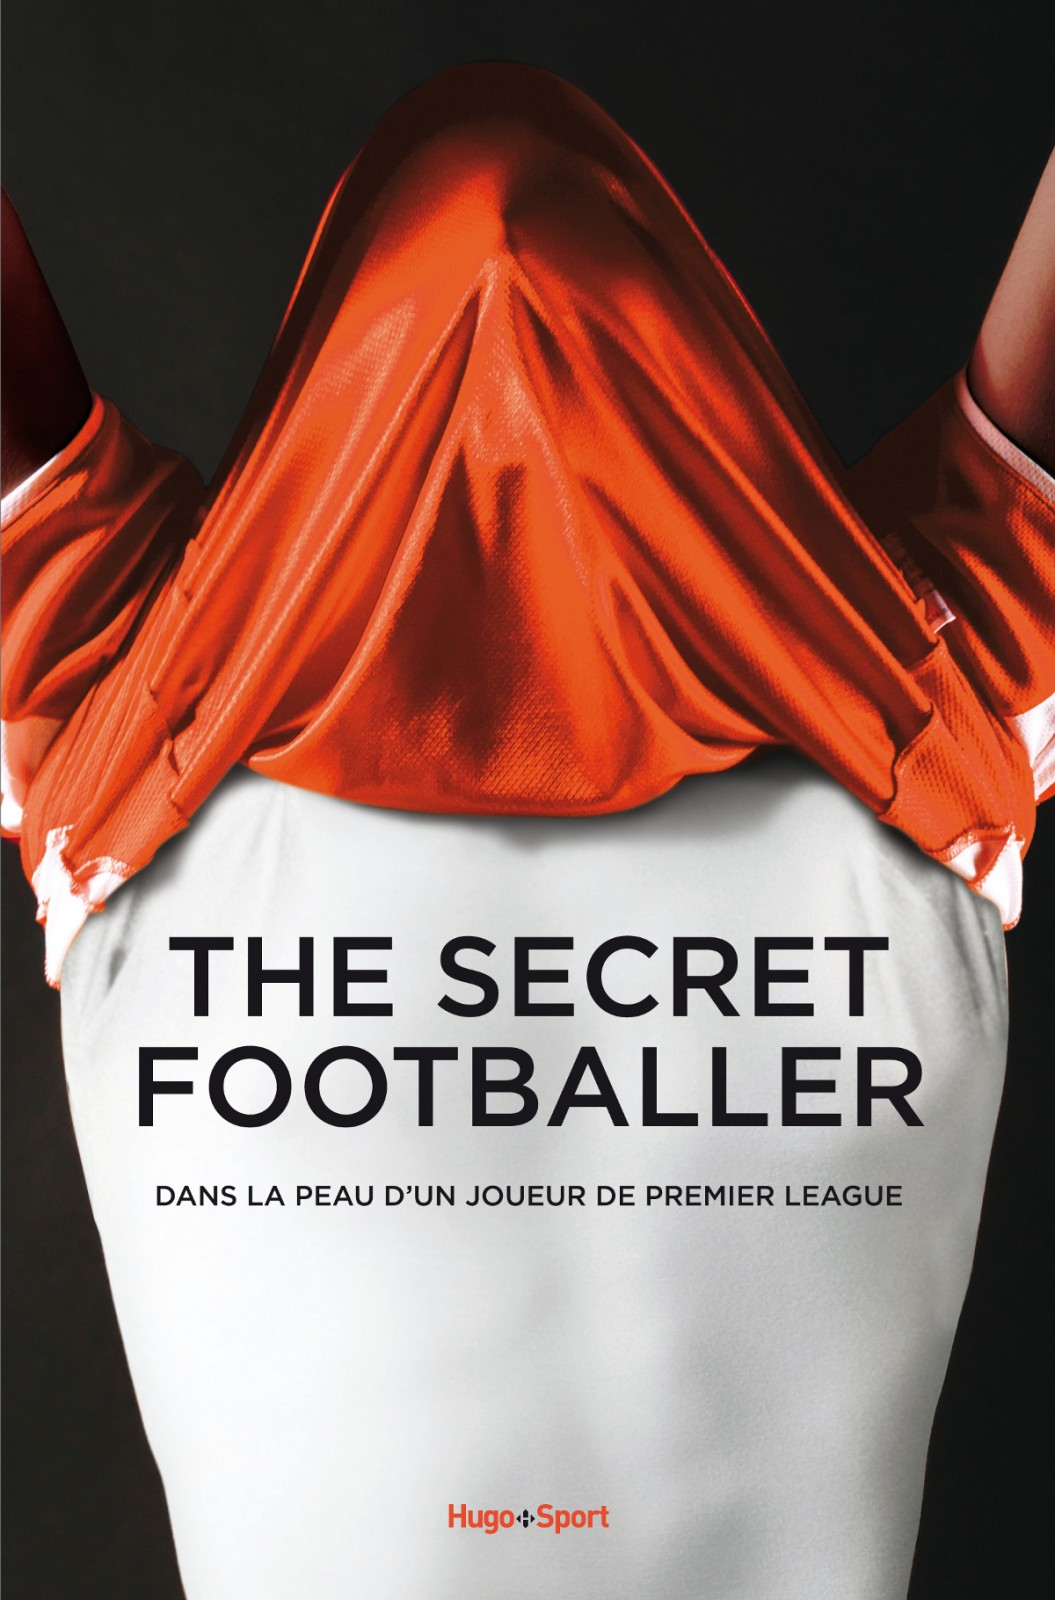 La couverture du livre The Secret Footballer aux éditions Hugo. ©DR